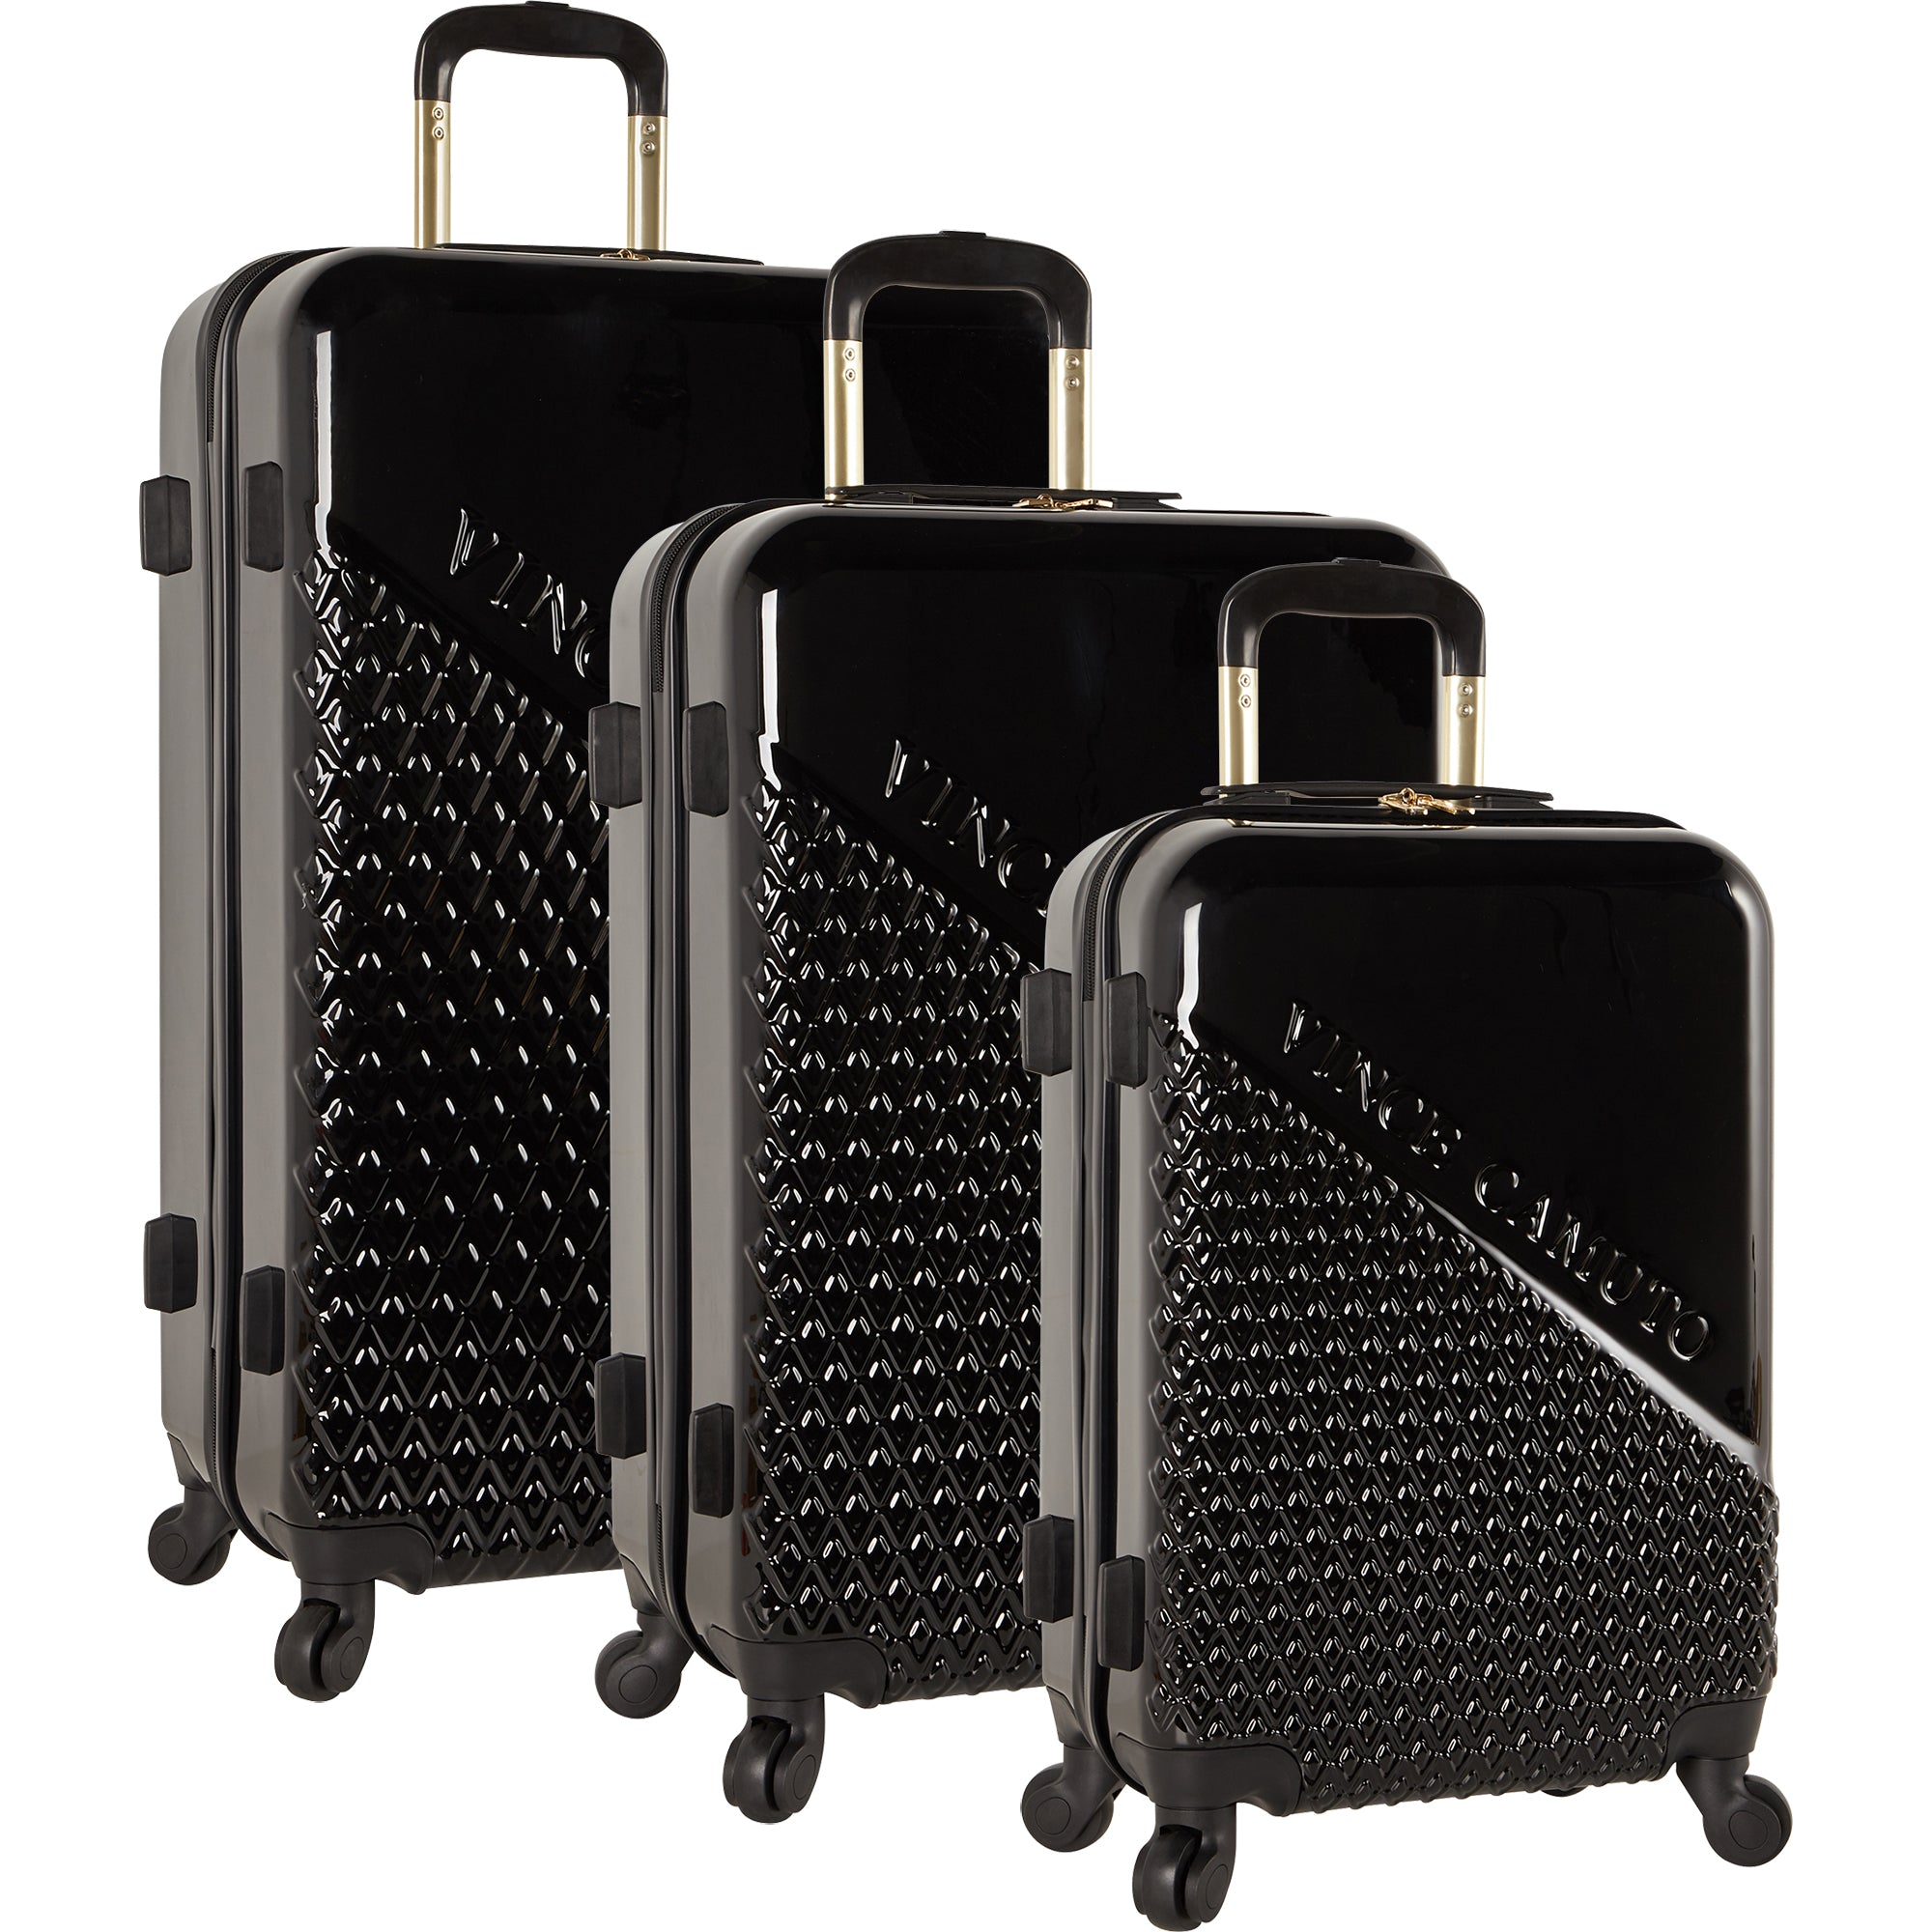 d721a1e171b5 Vince Camuto Sierrah 3 Piece Hardside Spinner Luggage Set